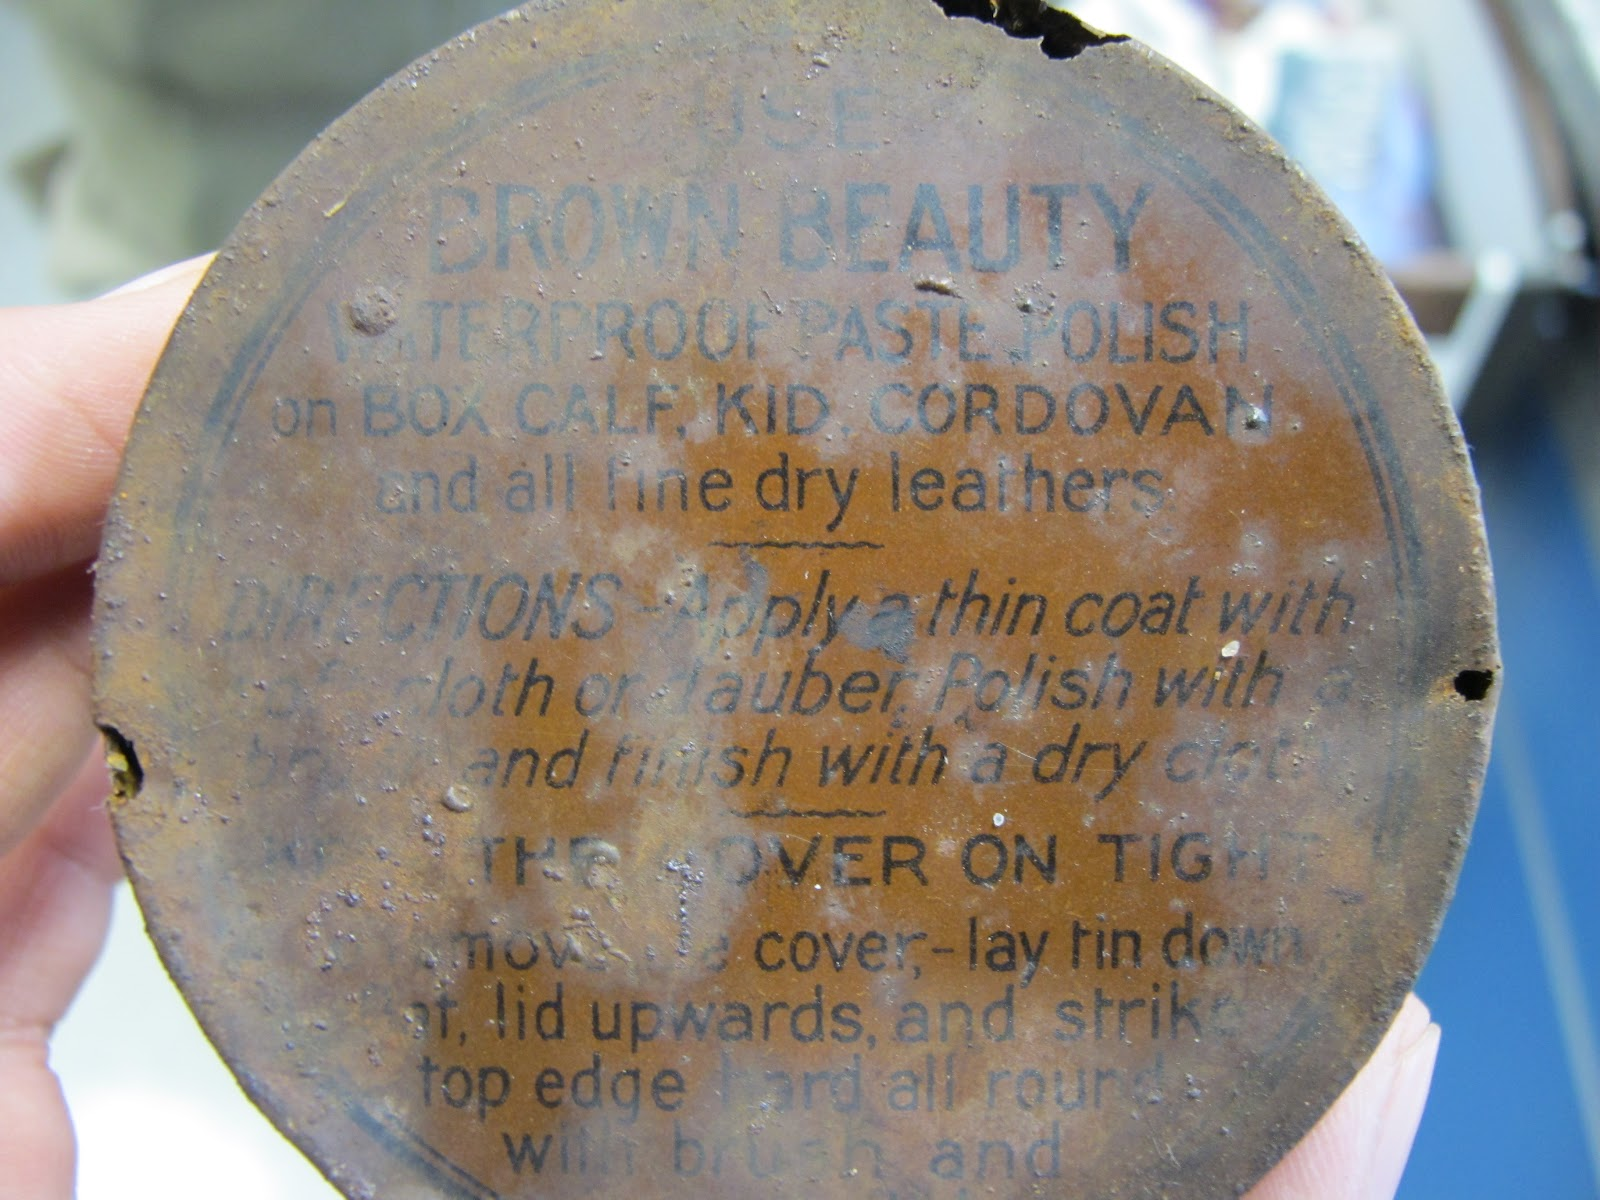 text found on artifacts such as this shoe polish tin lid can help us build a timeline for the